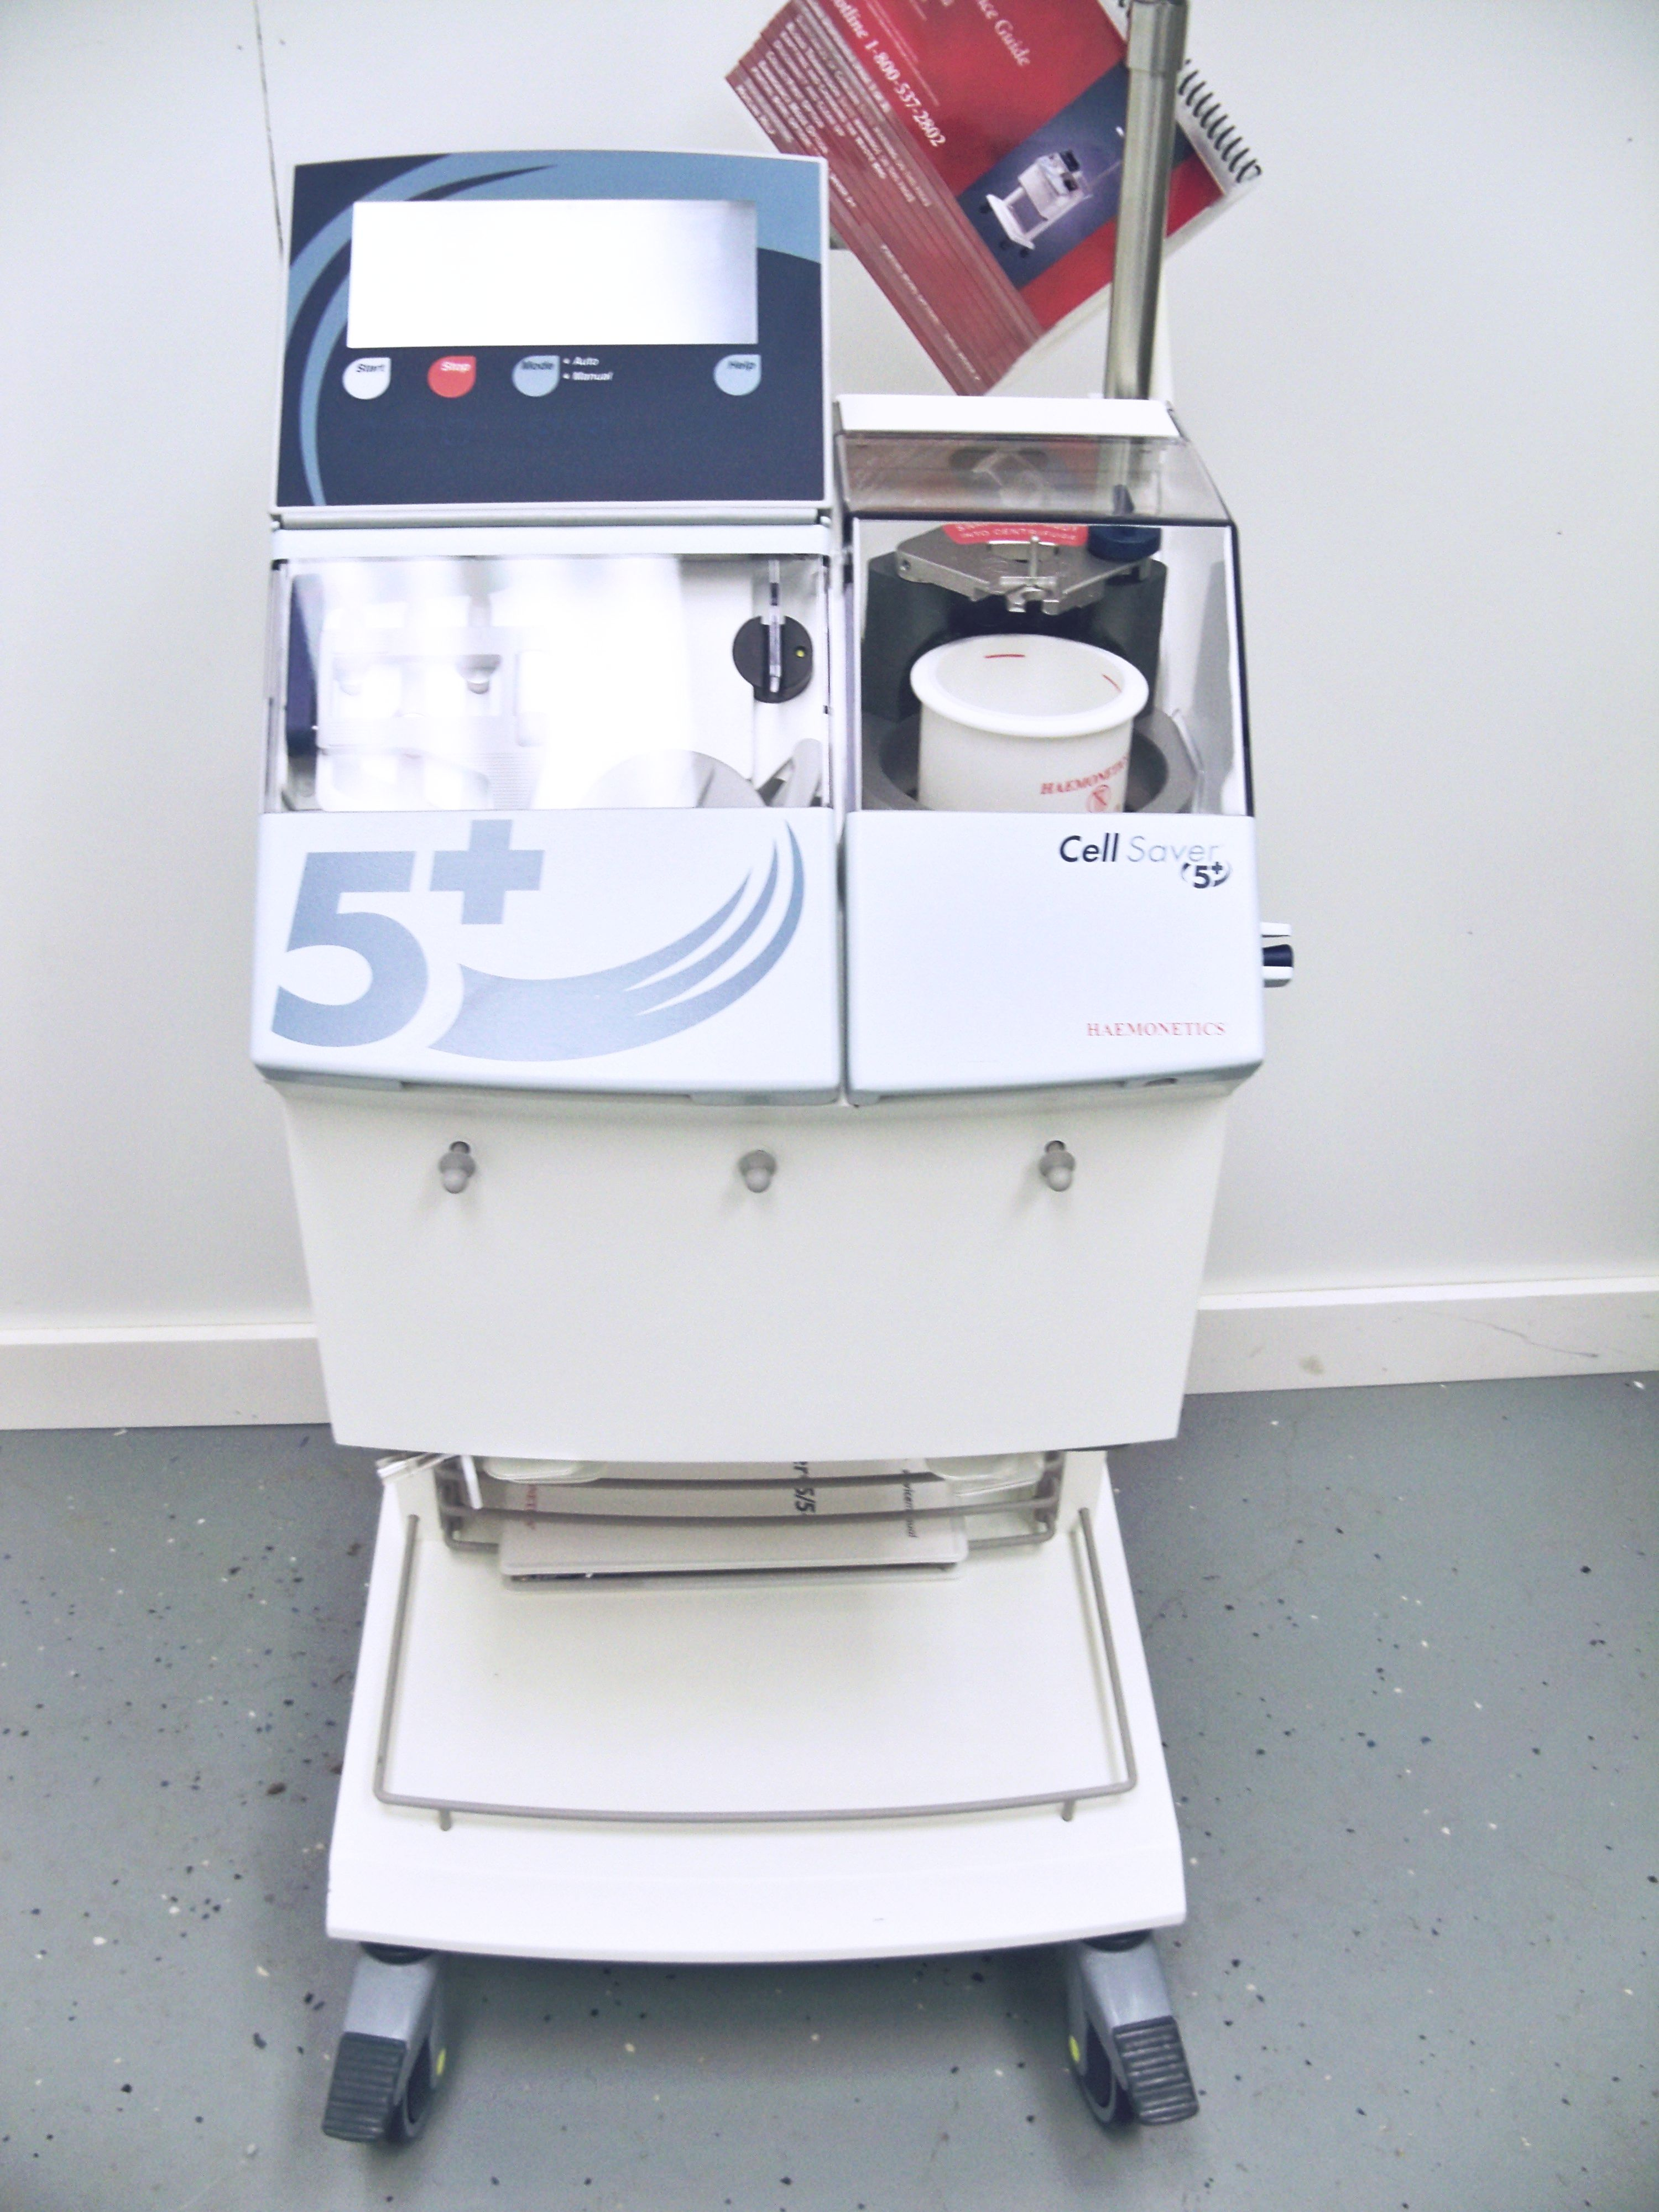 Used haemonetics cell saver 5 autologous blood recovery system.